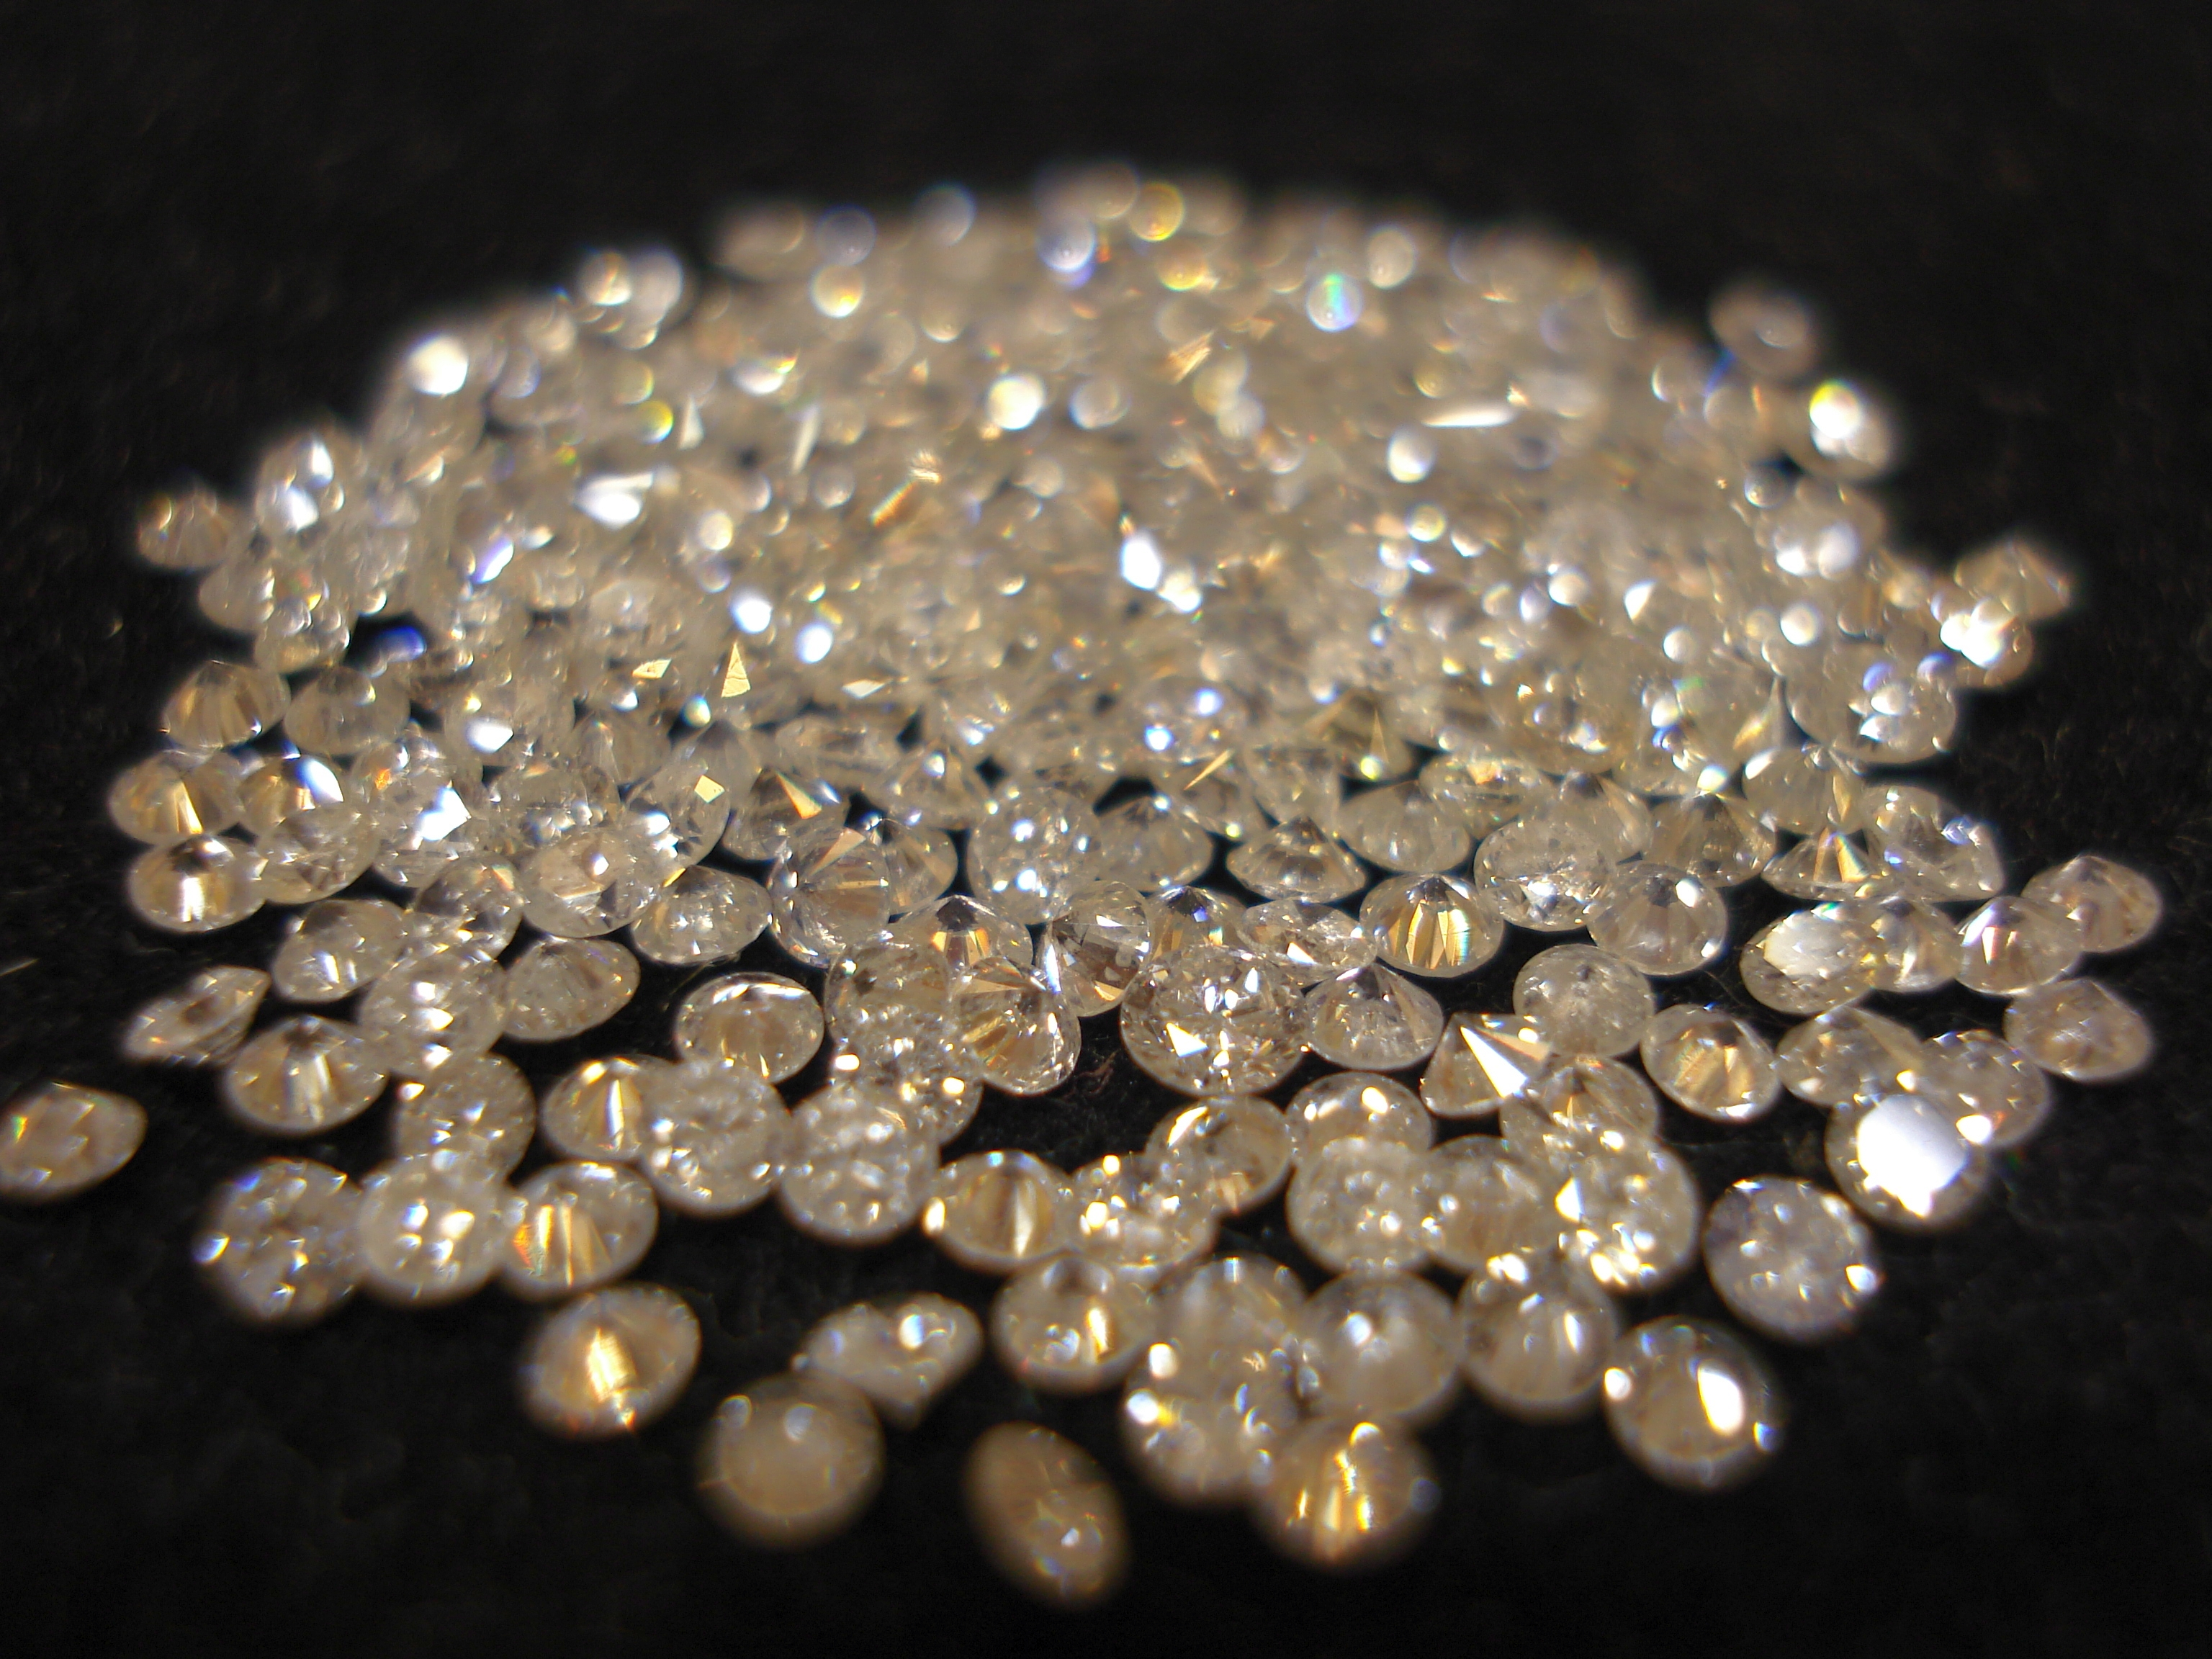 4 Things Everyone Needs To Know About Buying Diamonds